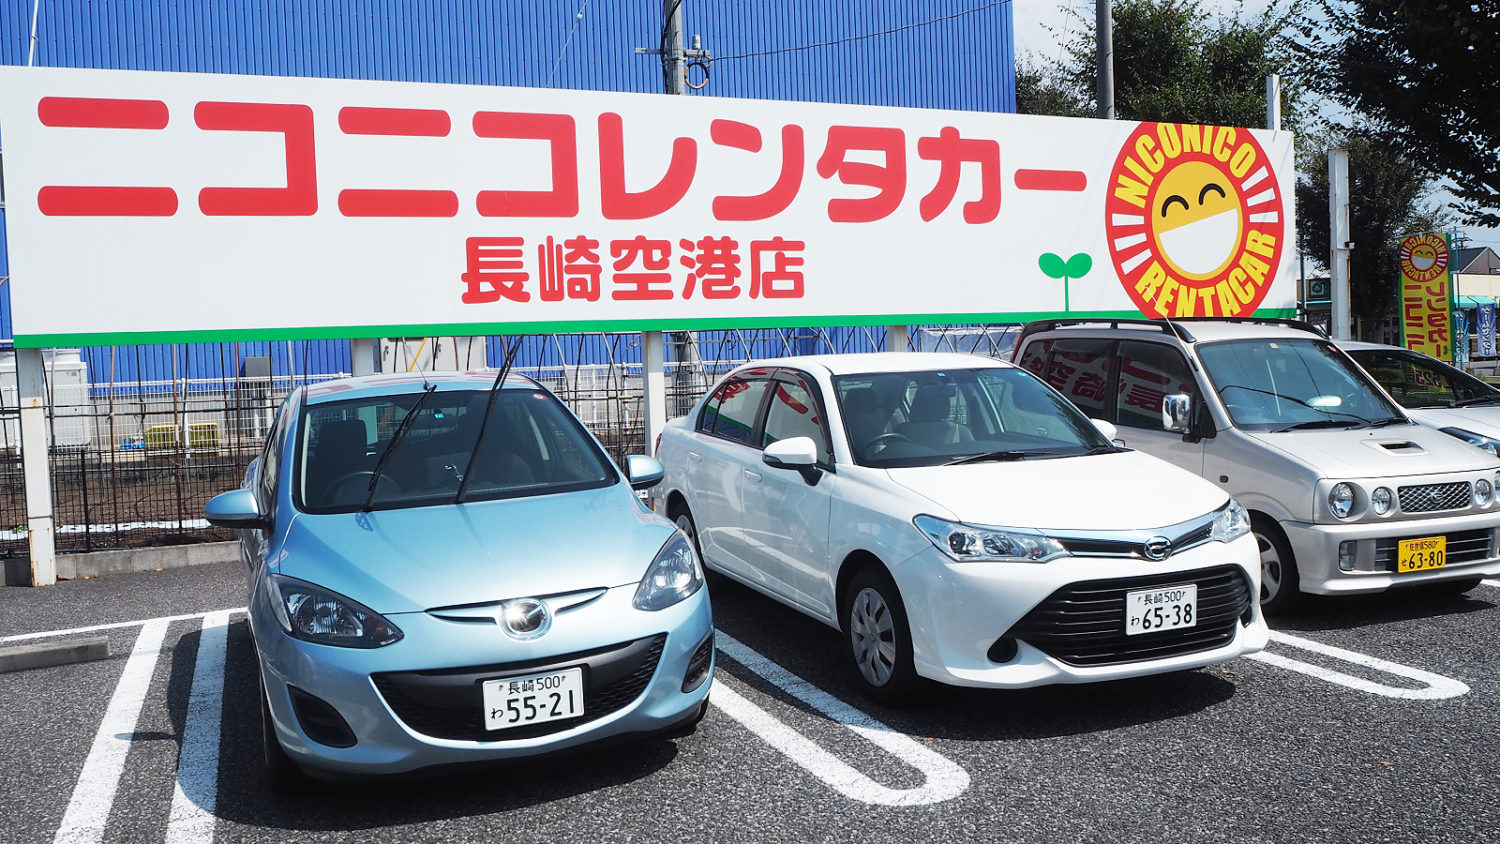 Blue, White, and Red Japanese cars under a NICONICO Rent a Car billboard.